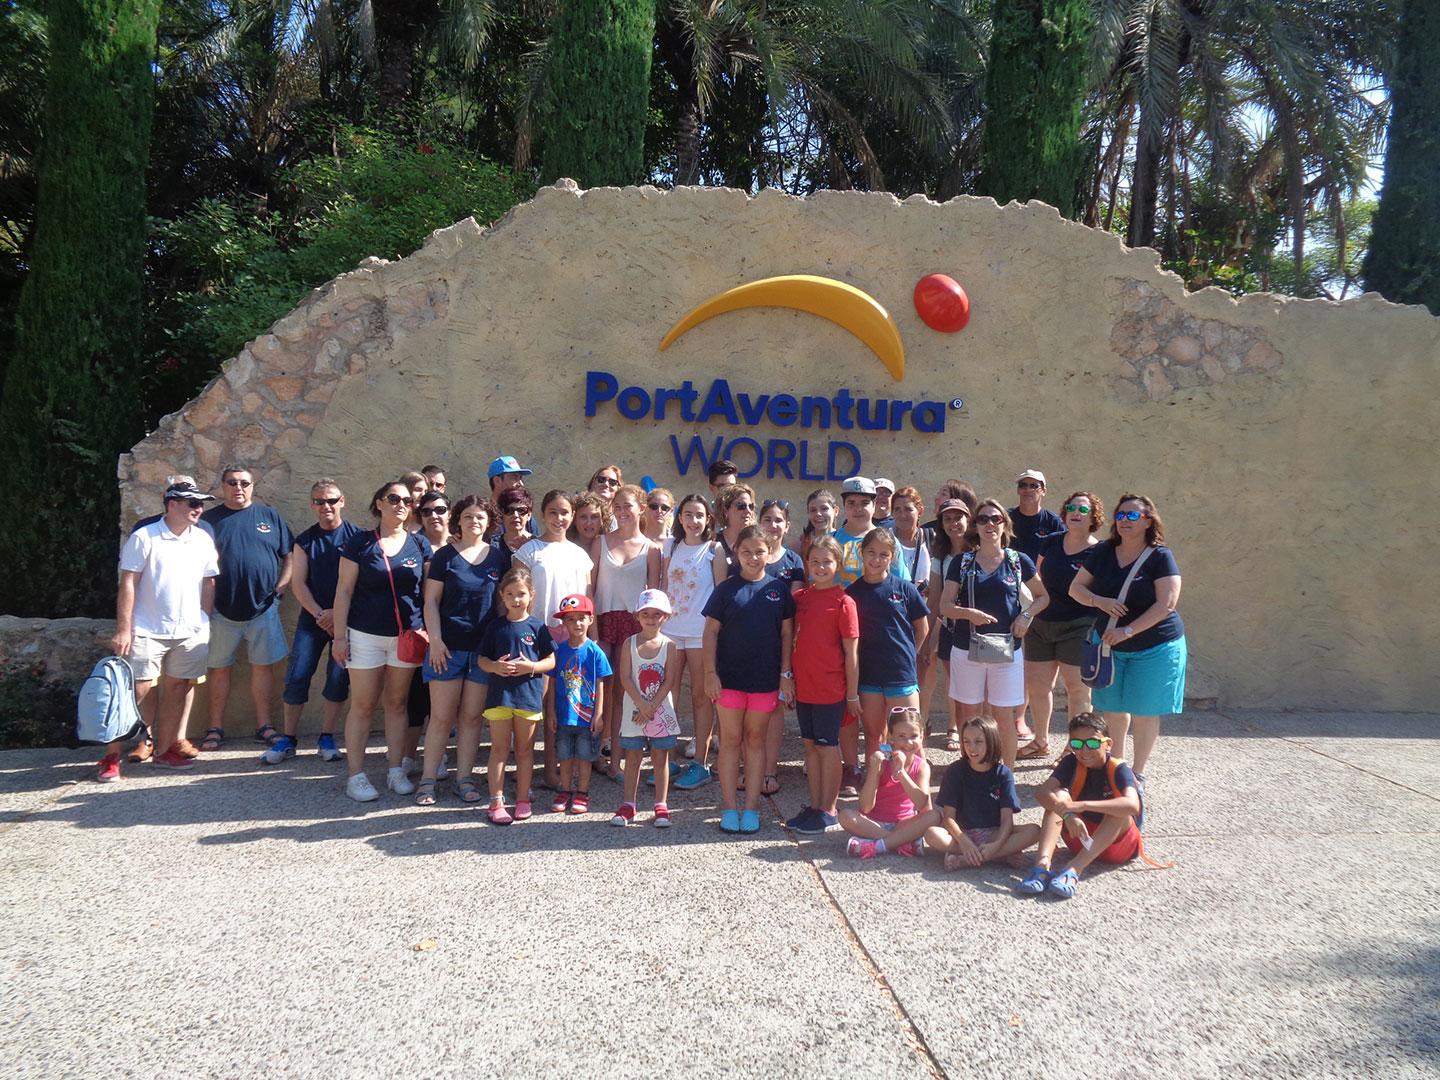 160702-portaventura-sequiol-1-6016